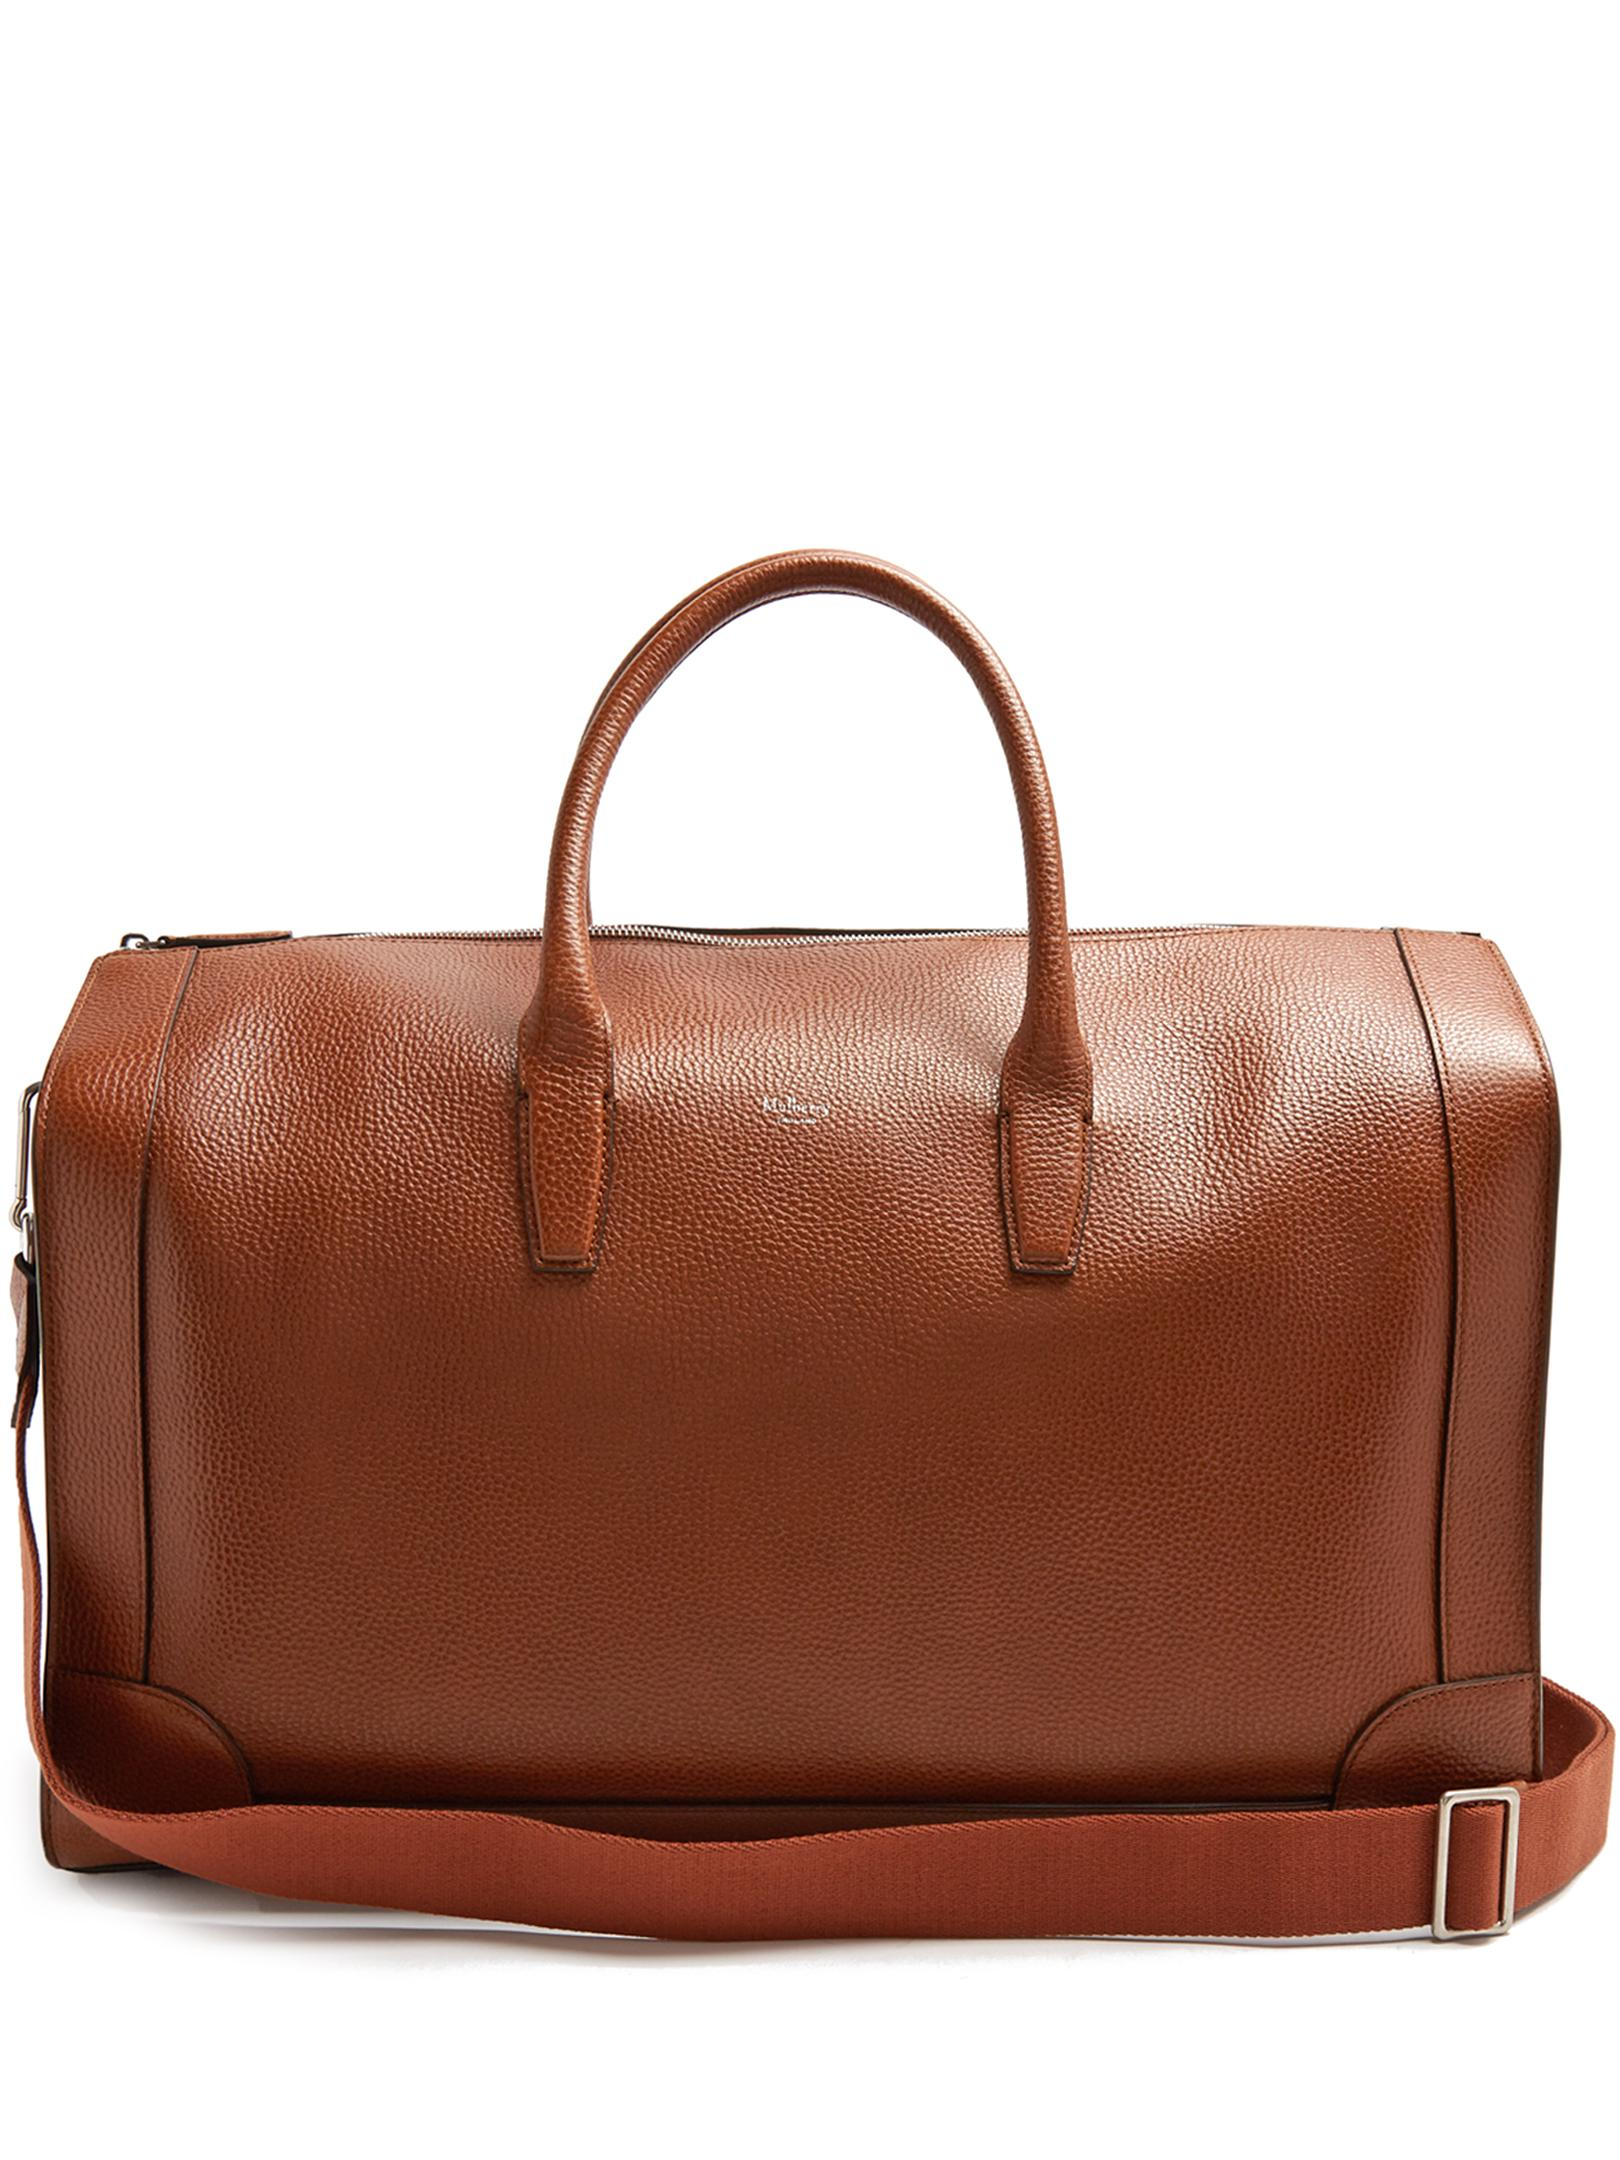 Lyst - Mulberry Belgrave Grained-leather Holdall in Brown for Men 277fd7ee120a9